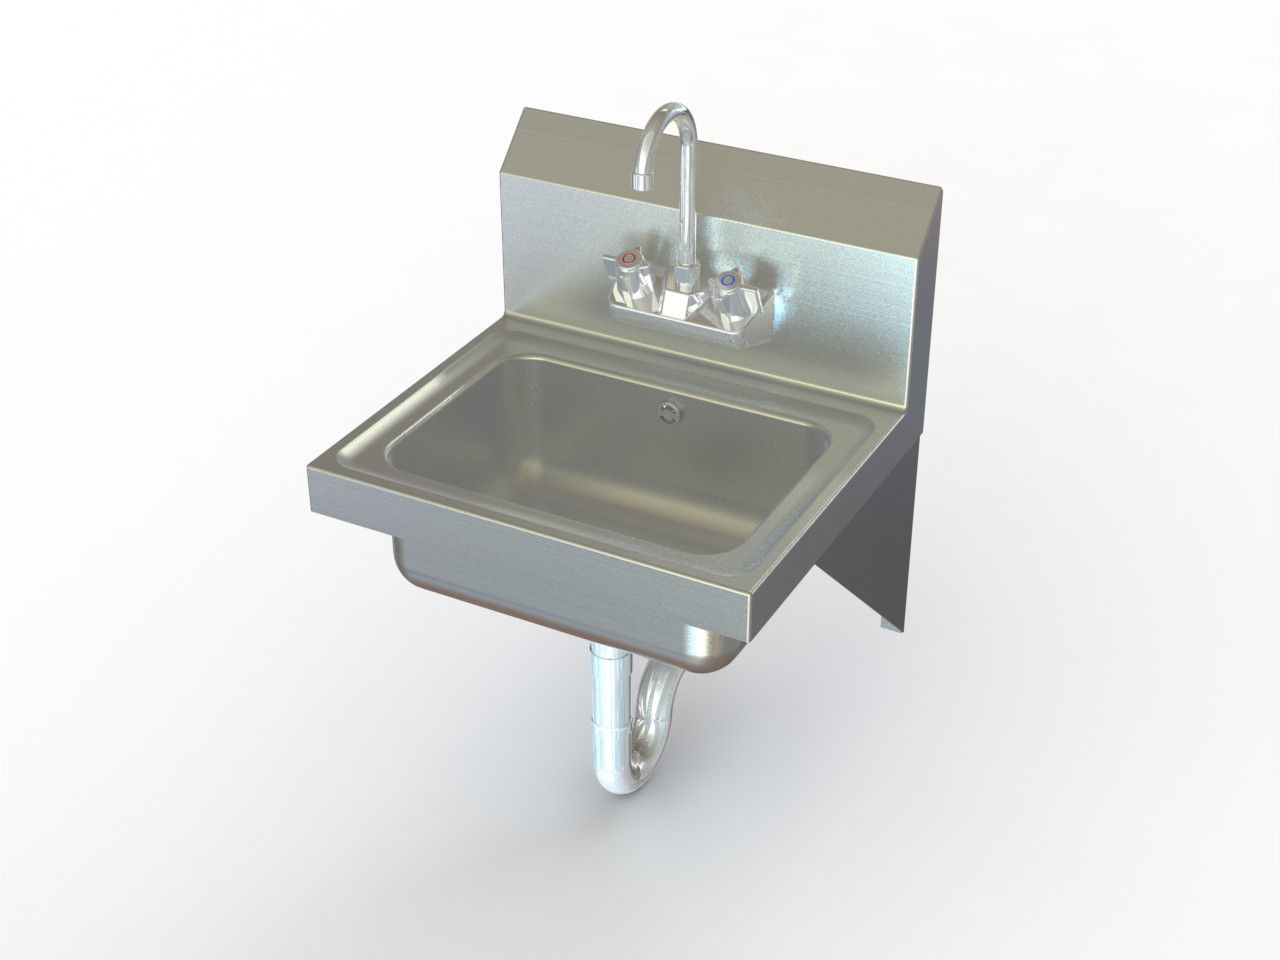 Aero Manufacturing Hand Sink Faucet